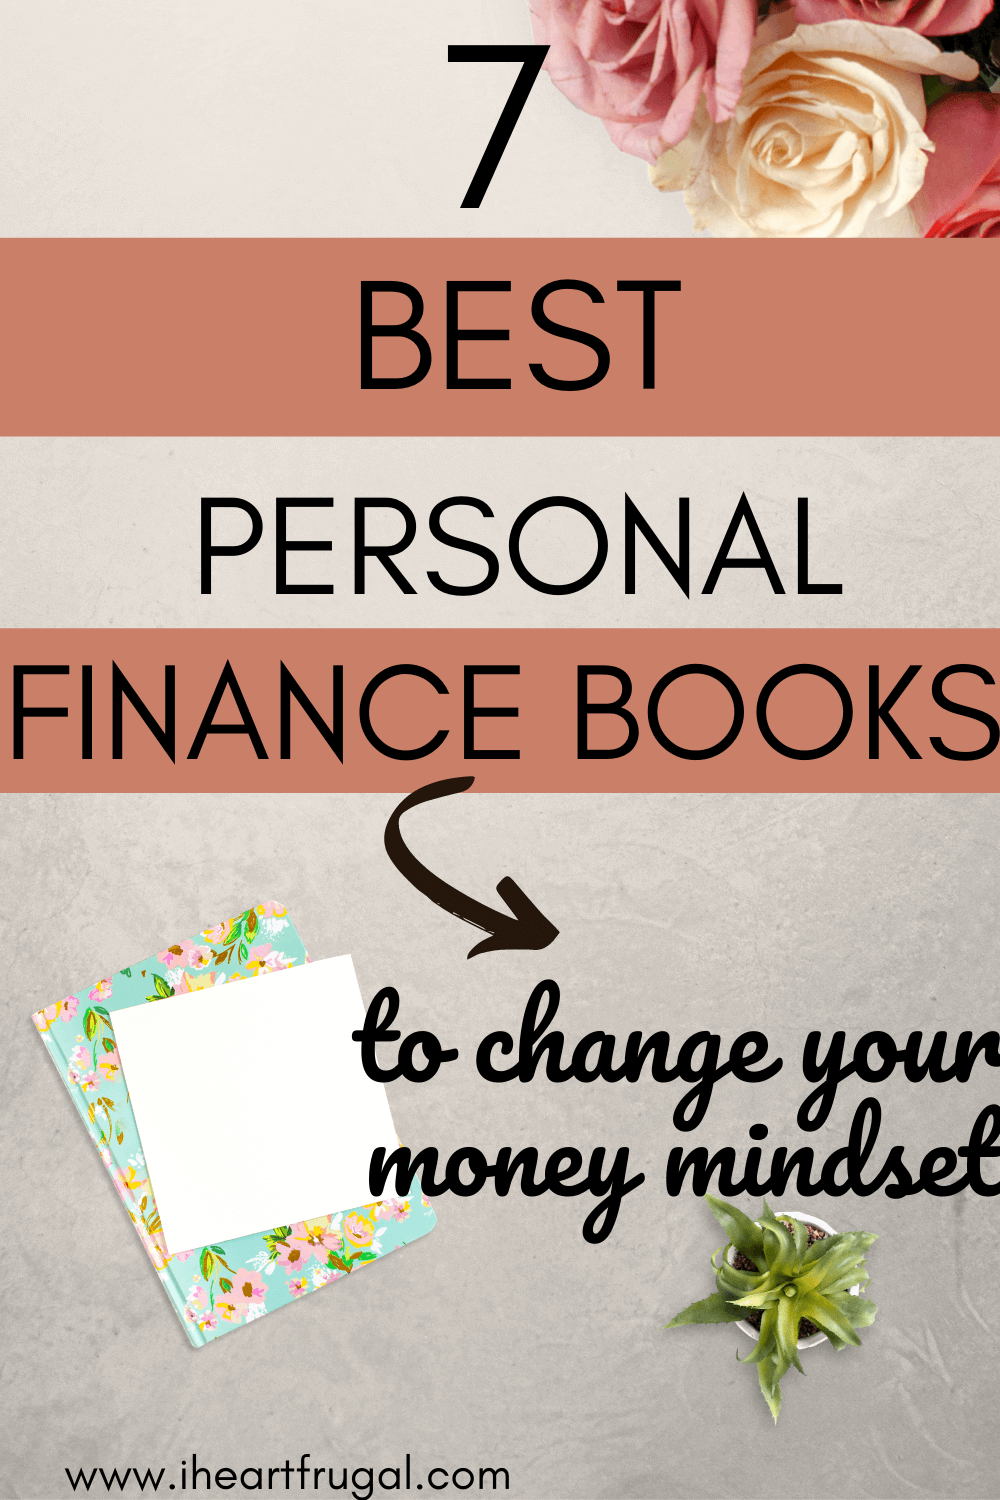 7 Personal Finance Books to Change Your Money Mindset - Are you ready to learn about personal finance so you can stop being broke? Living the paycheck to paycheck cycle is no fun. Learn more about your financial future and setting financial goals with my top seven personal finance books. Start building wealth and living the life of your dreams.